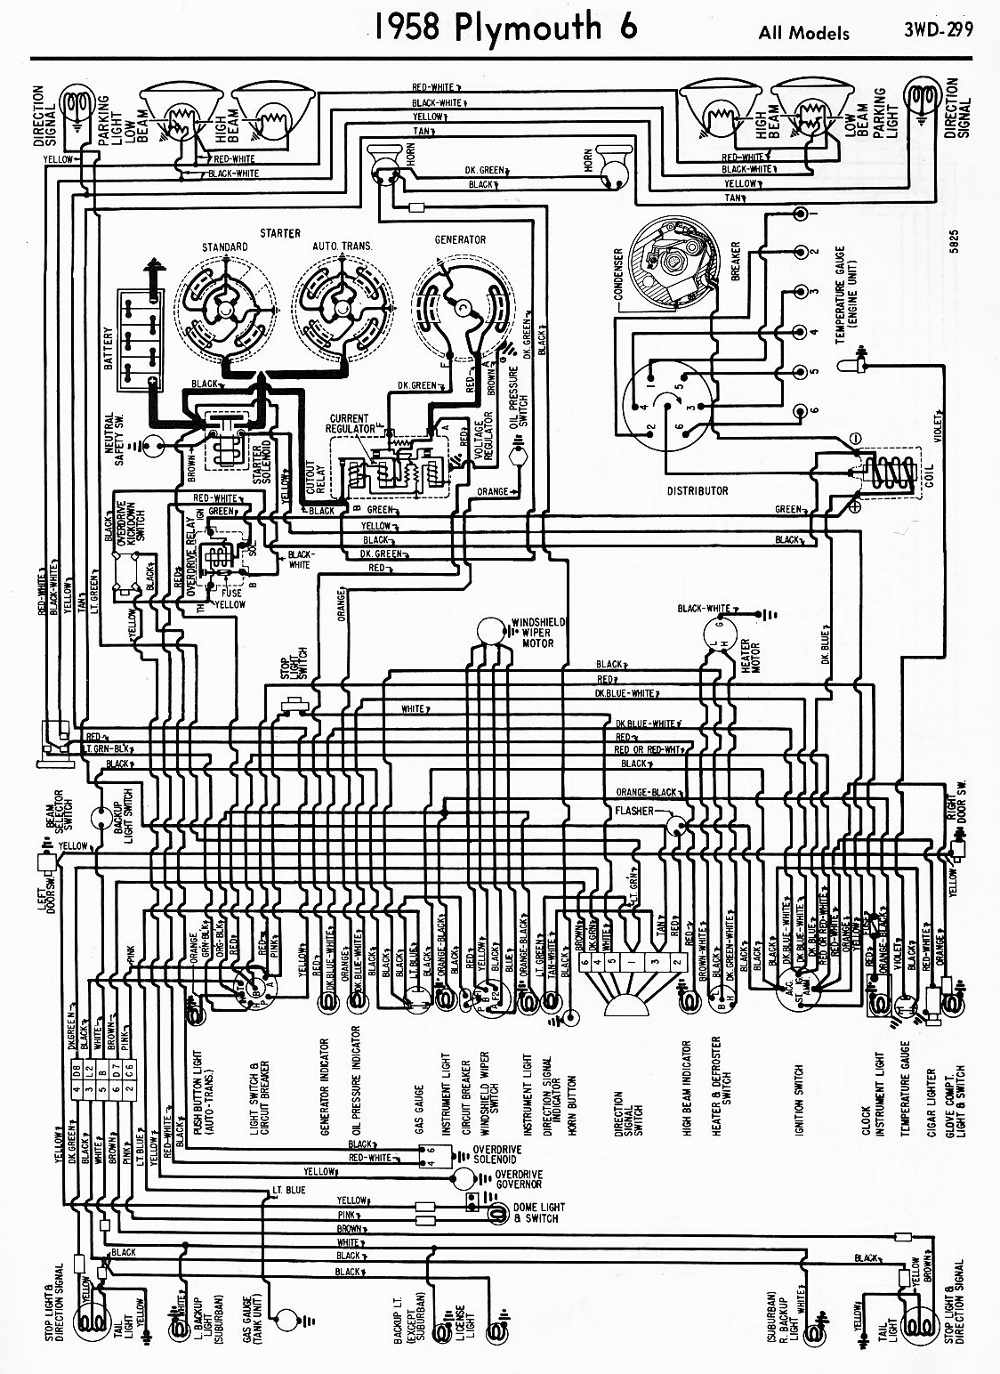 1958 Plymouth 6 All Models Wiring Diagram